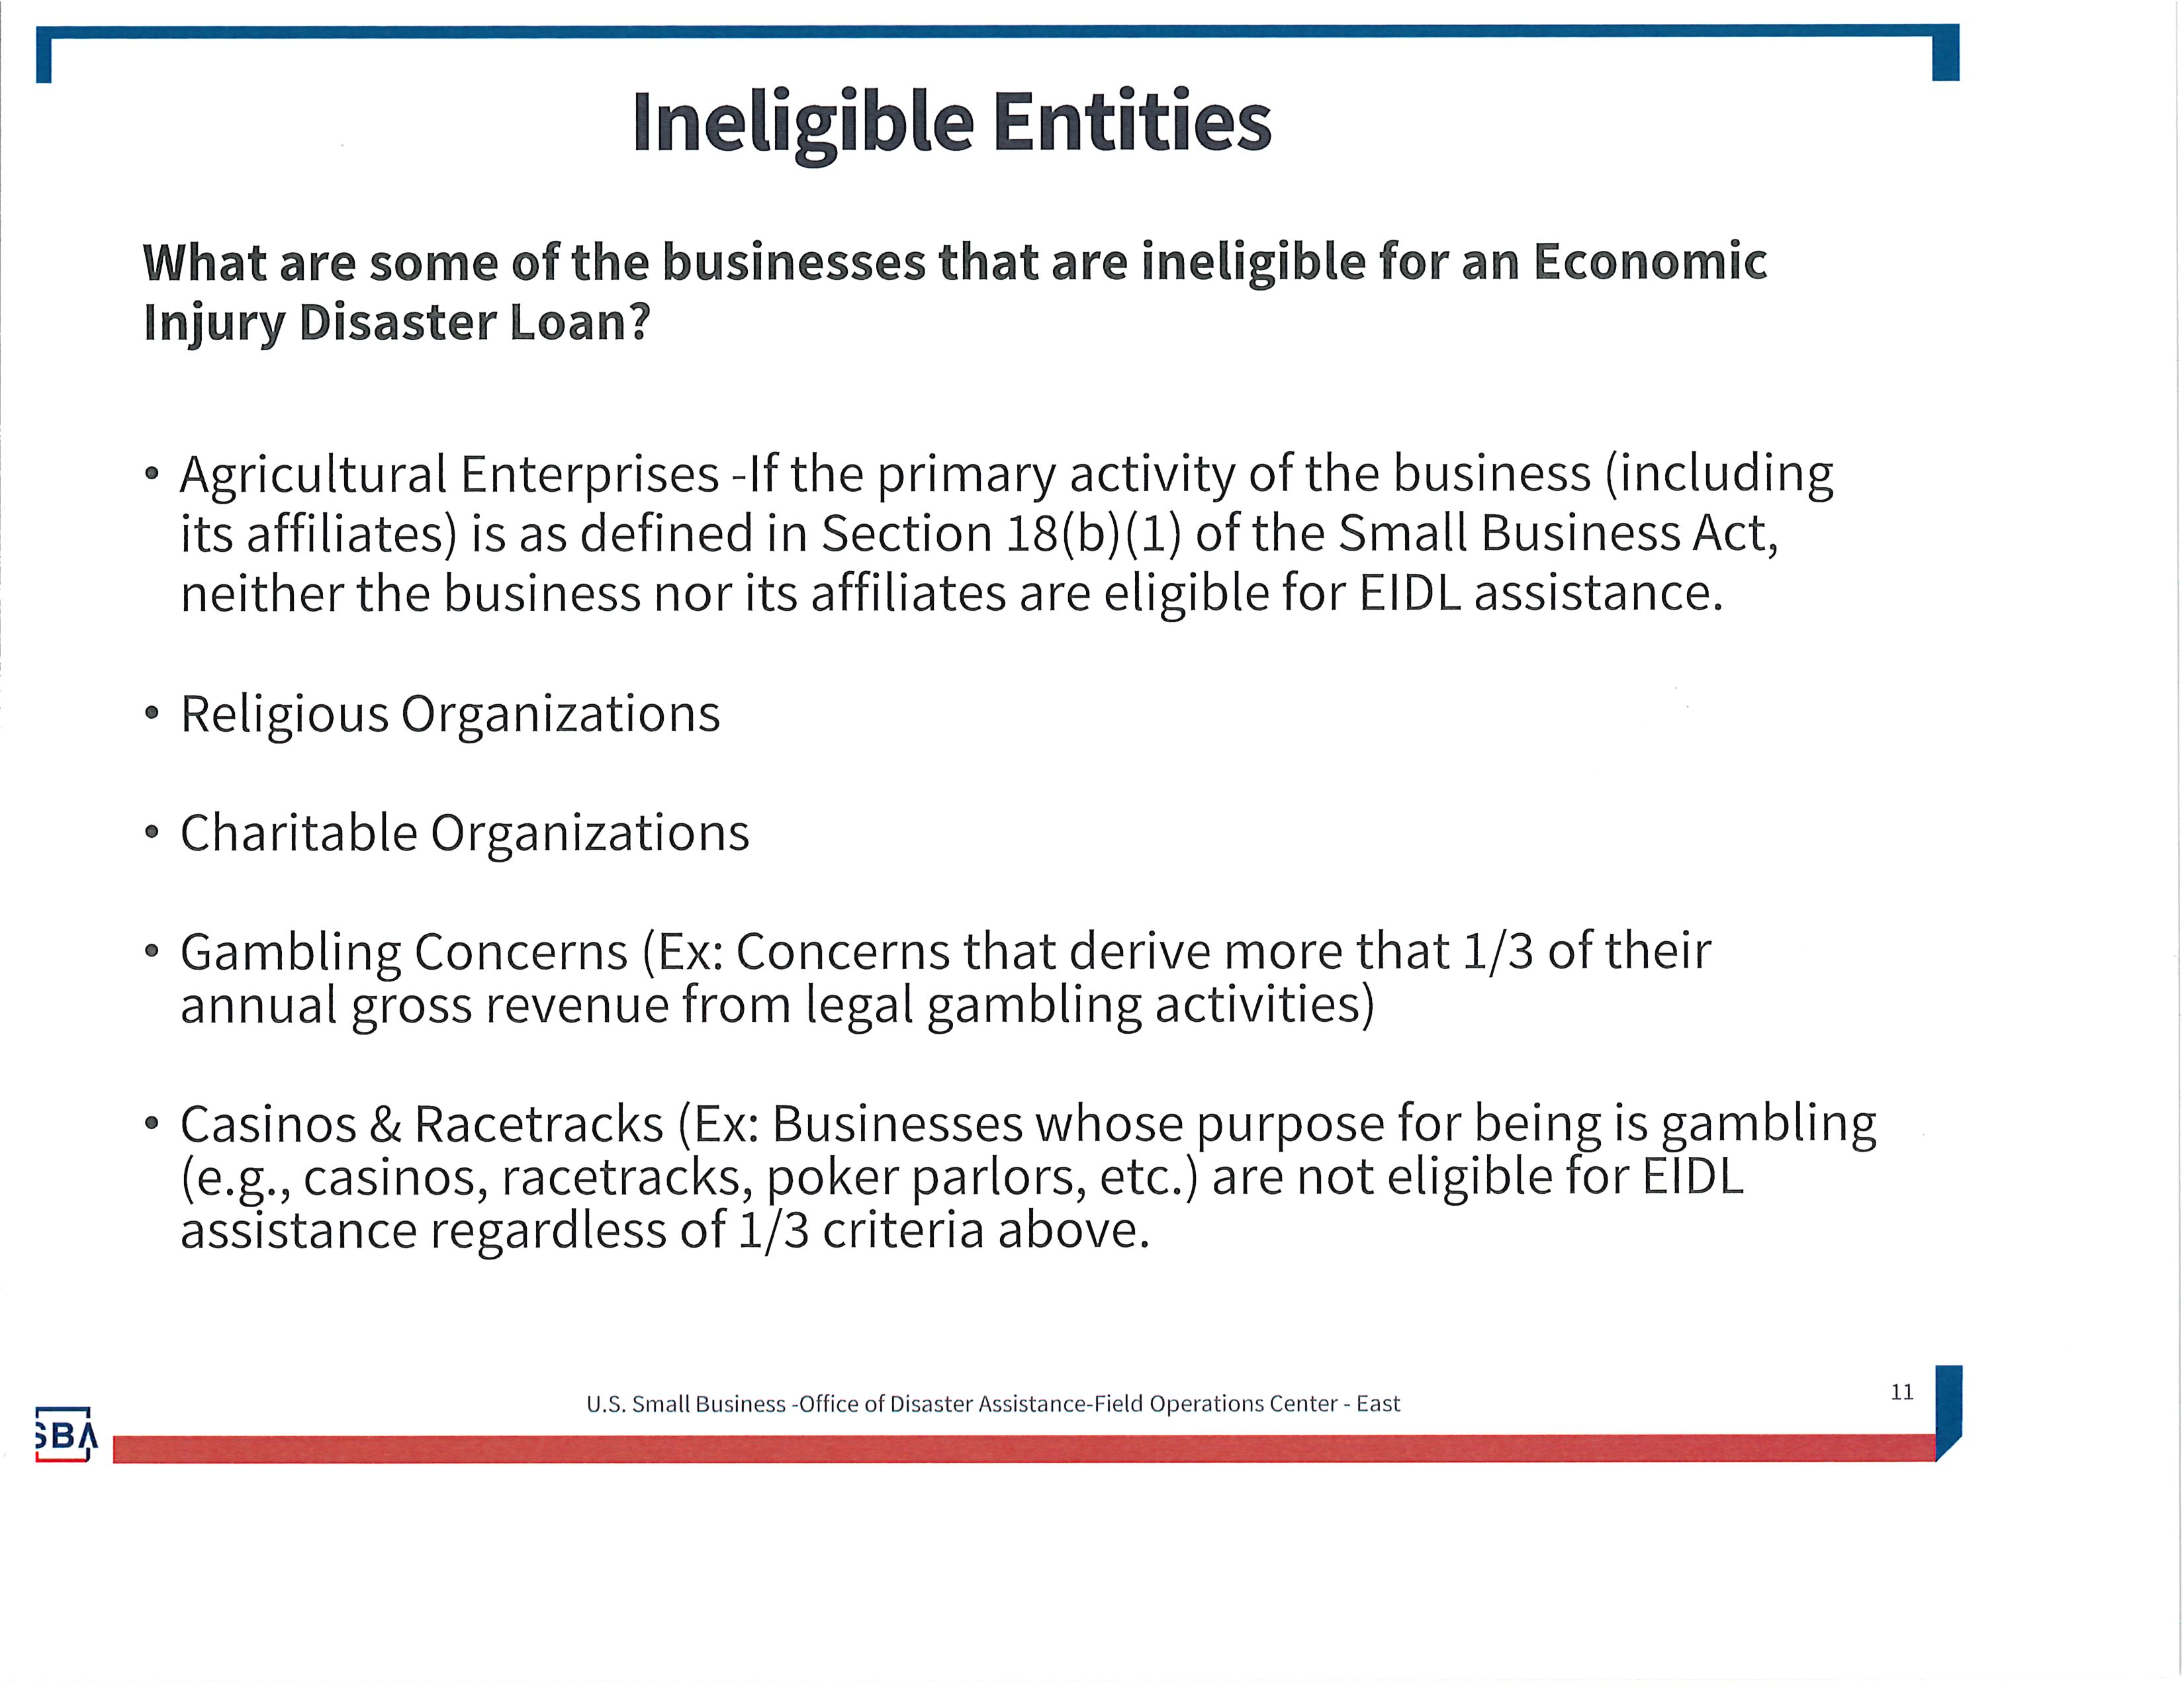 Ineligible-Types-of-Business.png